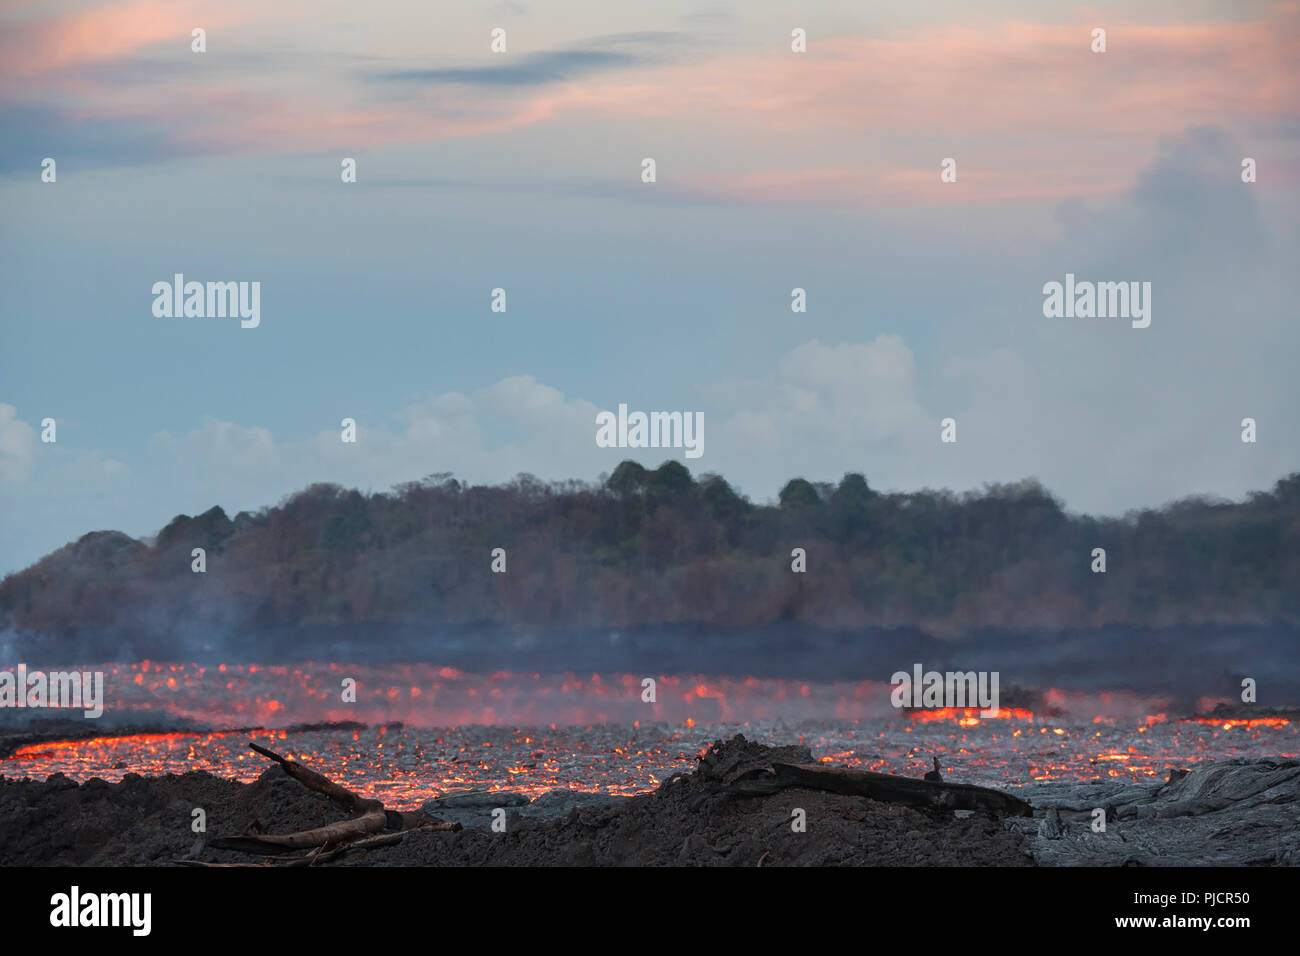 Lava erupting from Fissure 8 of Kilauea Volcano flows through Kapoho, Hawaii, as a glowing river of hot lava. Shimmering Heat waves distort the view. - Stock Image